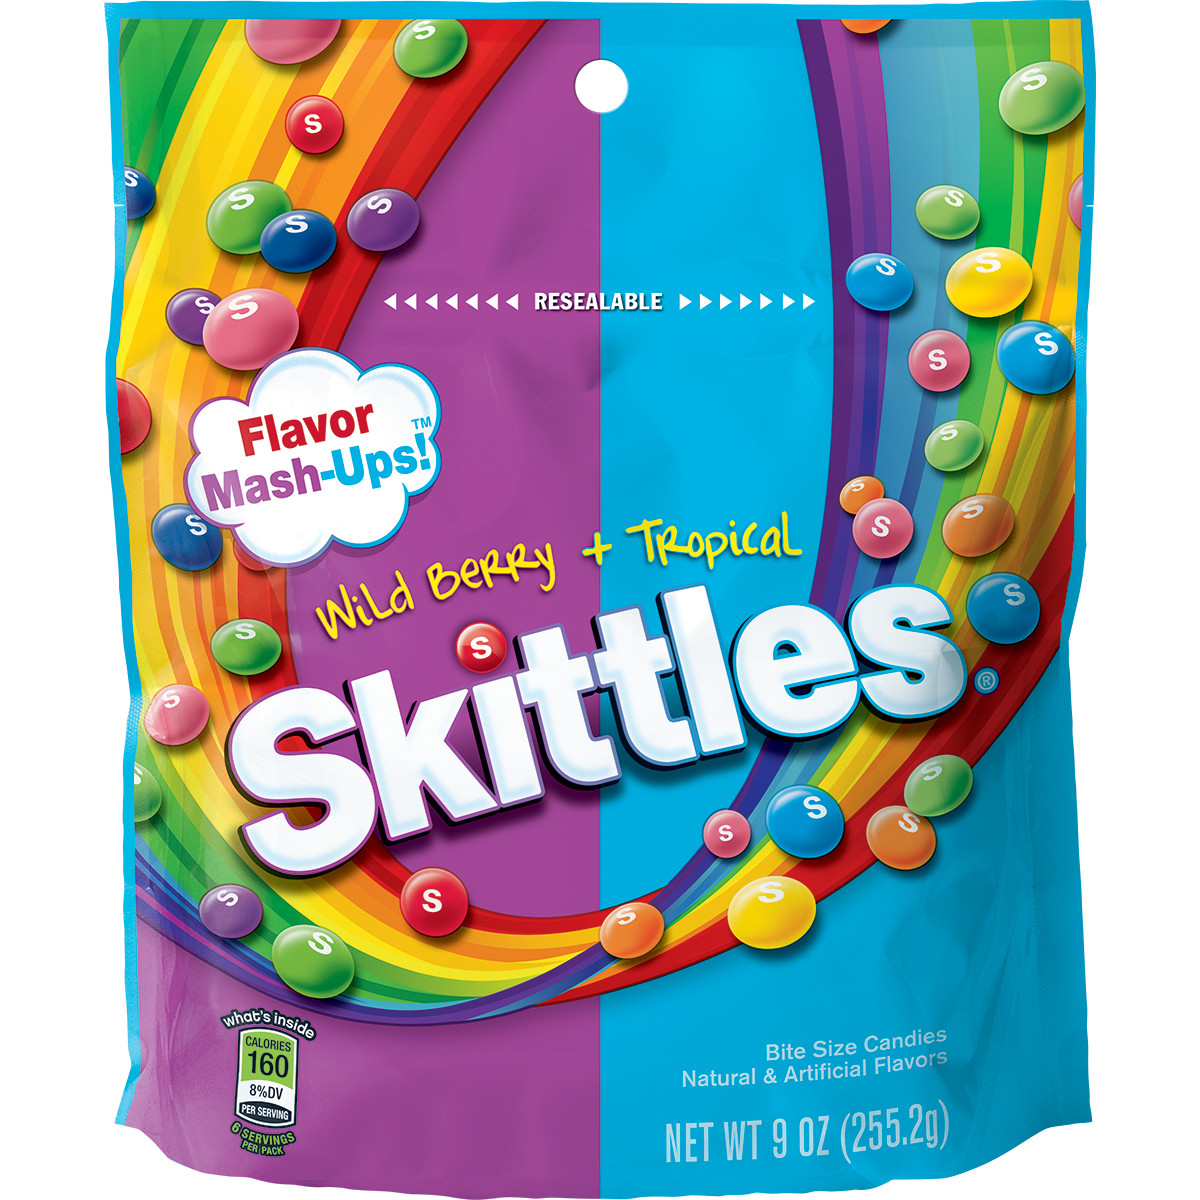 Skittles Flavor Mash-Ups! Wild Berry   Tropical Bite Size Candies 9oz